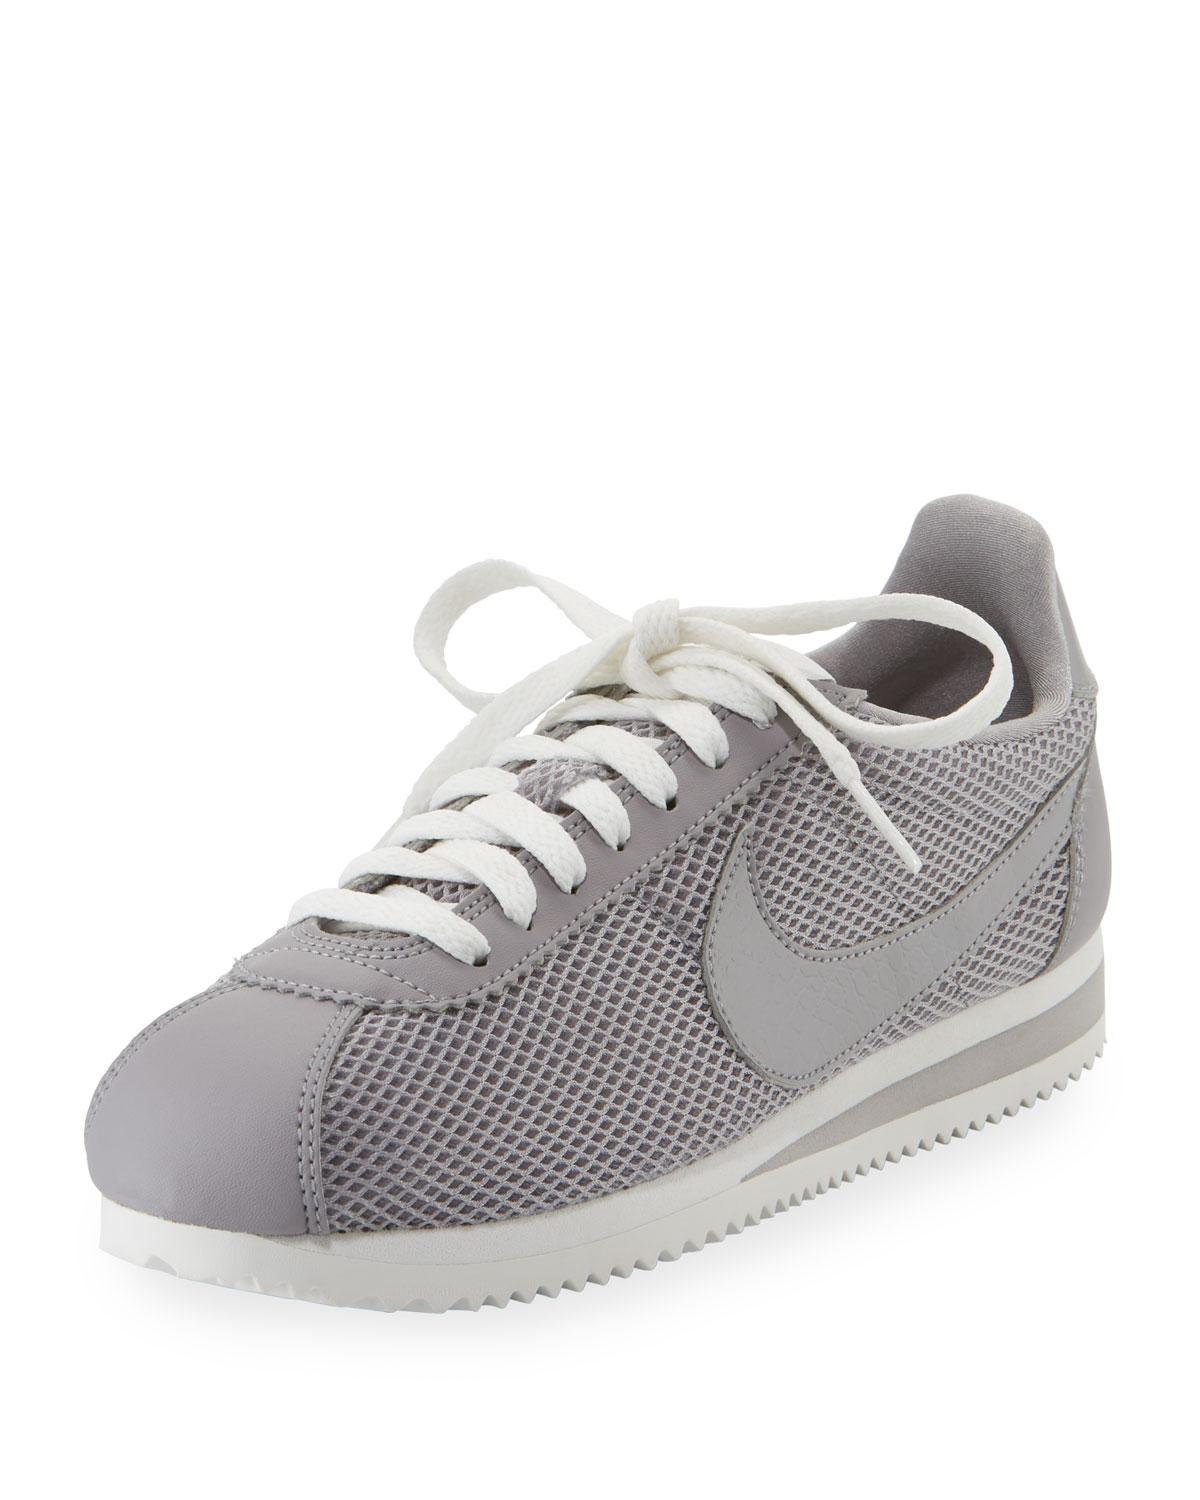 Nike Women S Classic Cortez Mesh Lace Up Sneakers In Atmosphere Grey ... afca29ea2a39